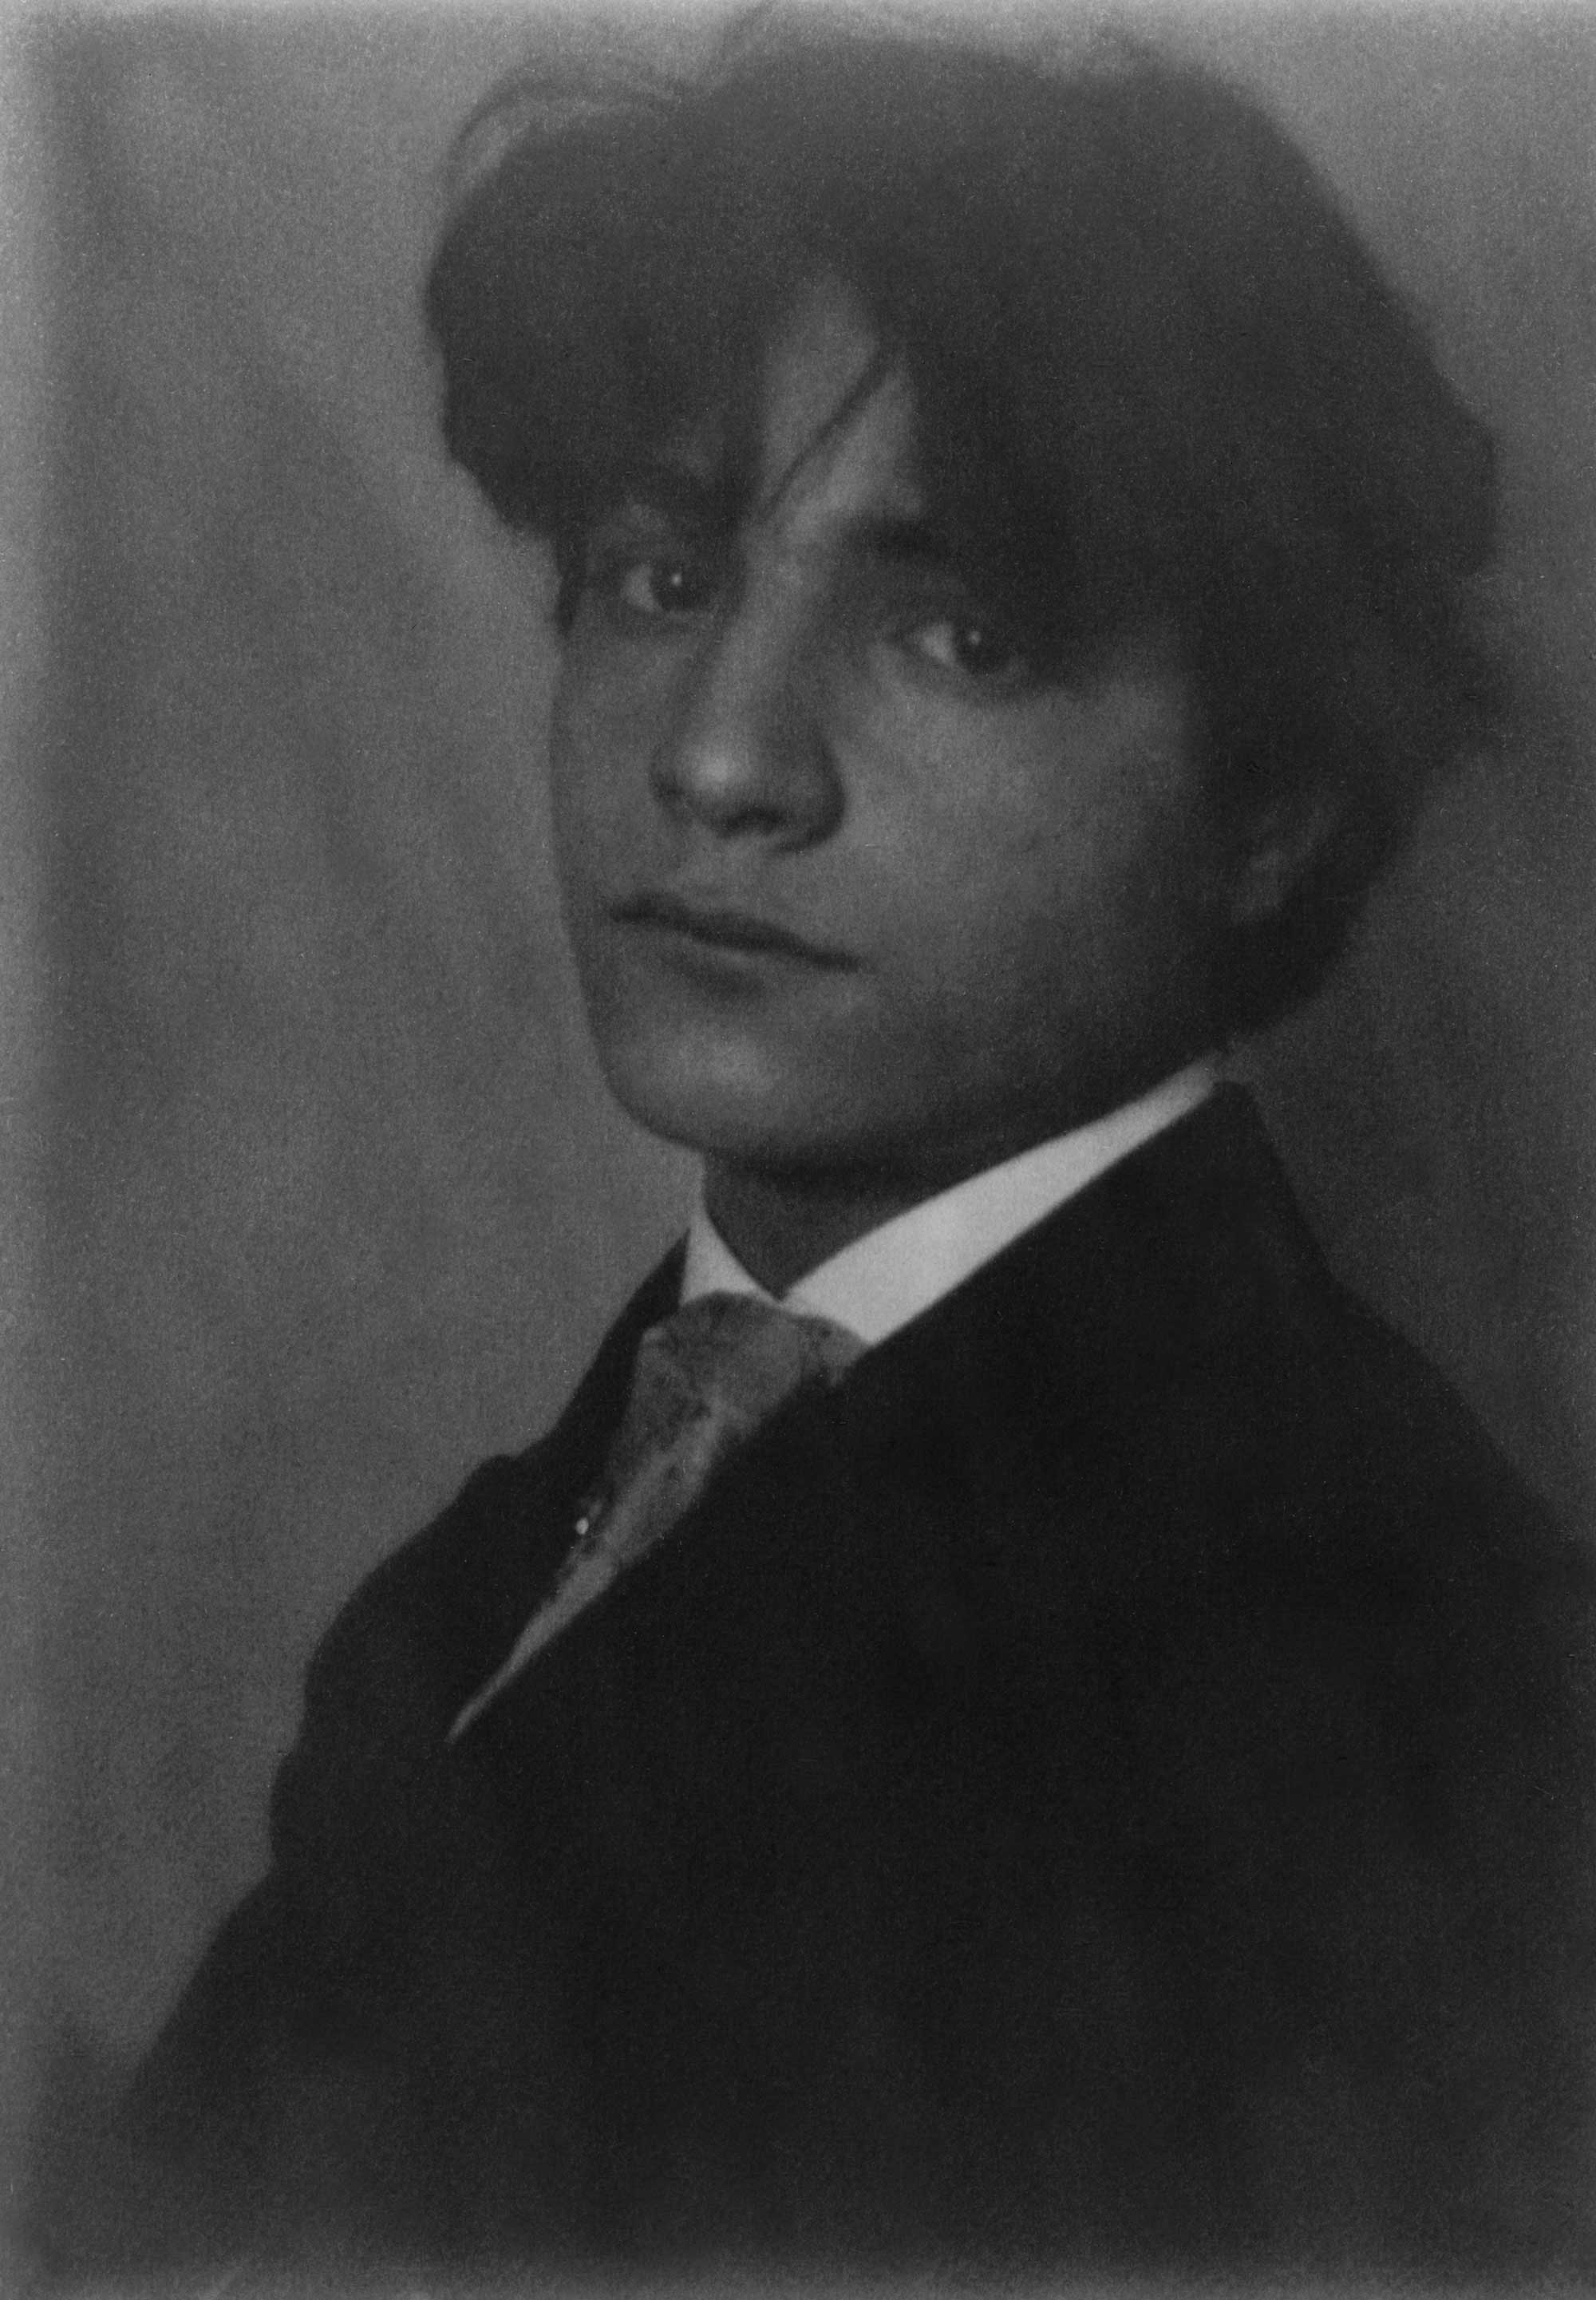 c. 1906: Young man, possibly Nicolas Giancola